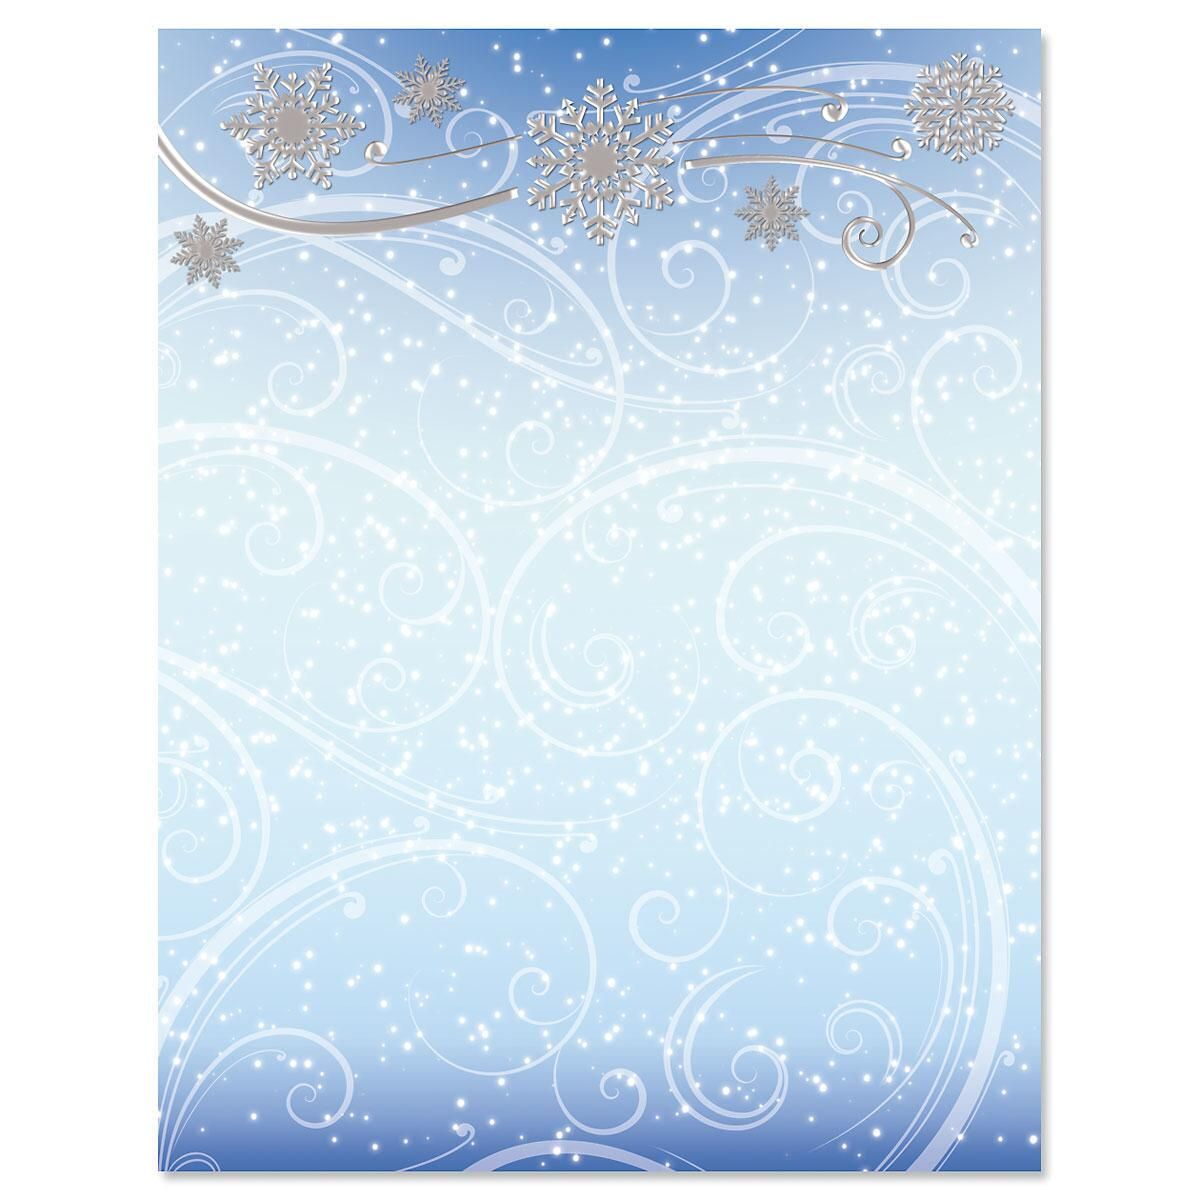 Winter Wonder Deluxe Christmas Letter Papers